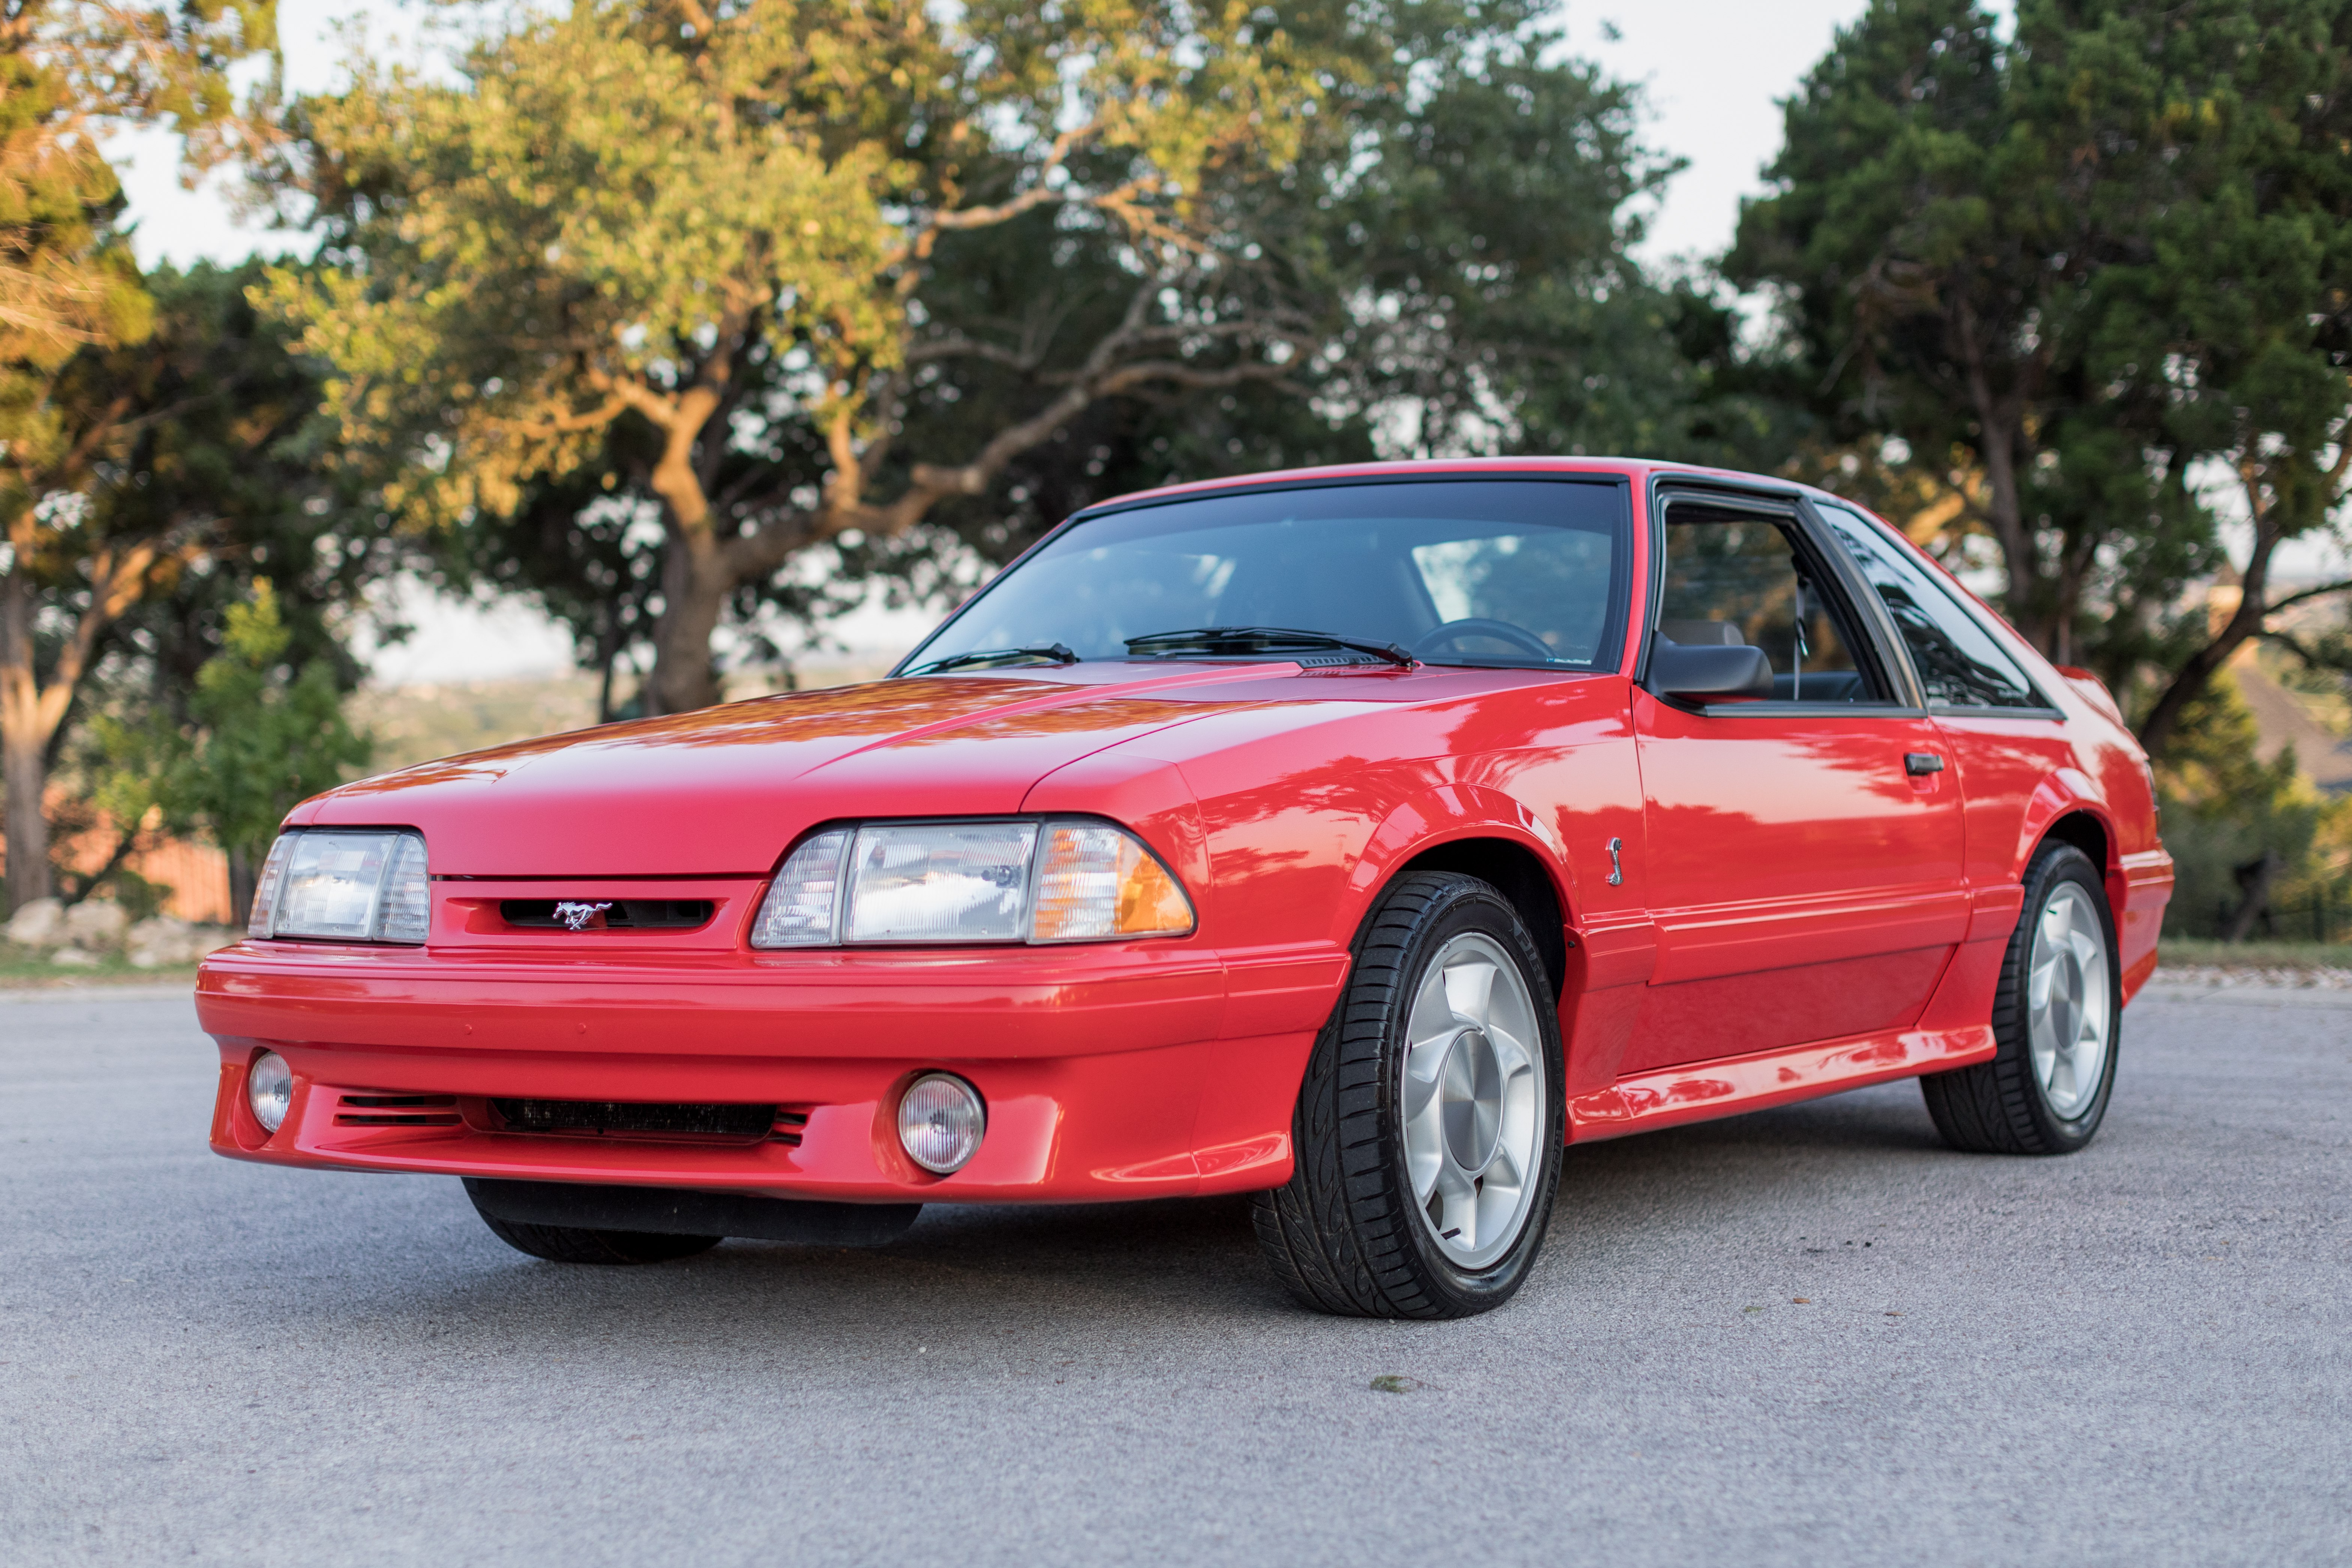 1993-Mustang-Cobra-Vibrant-Red